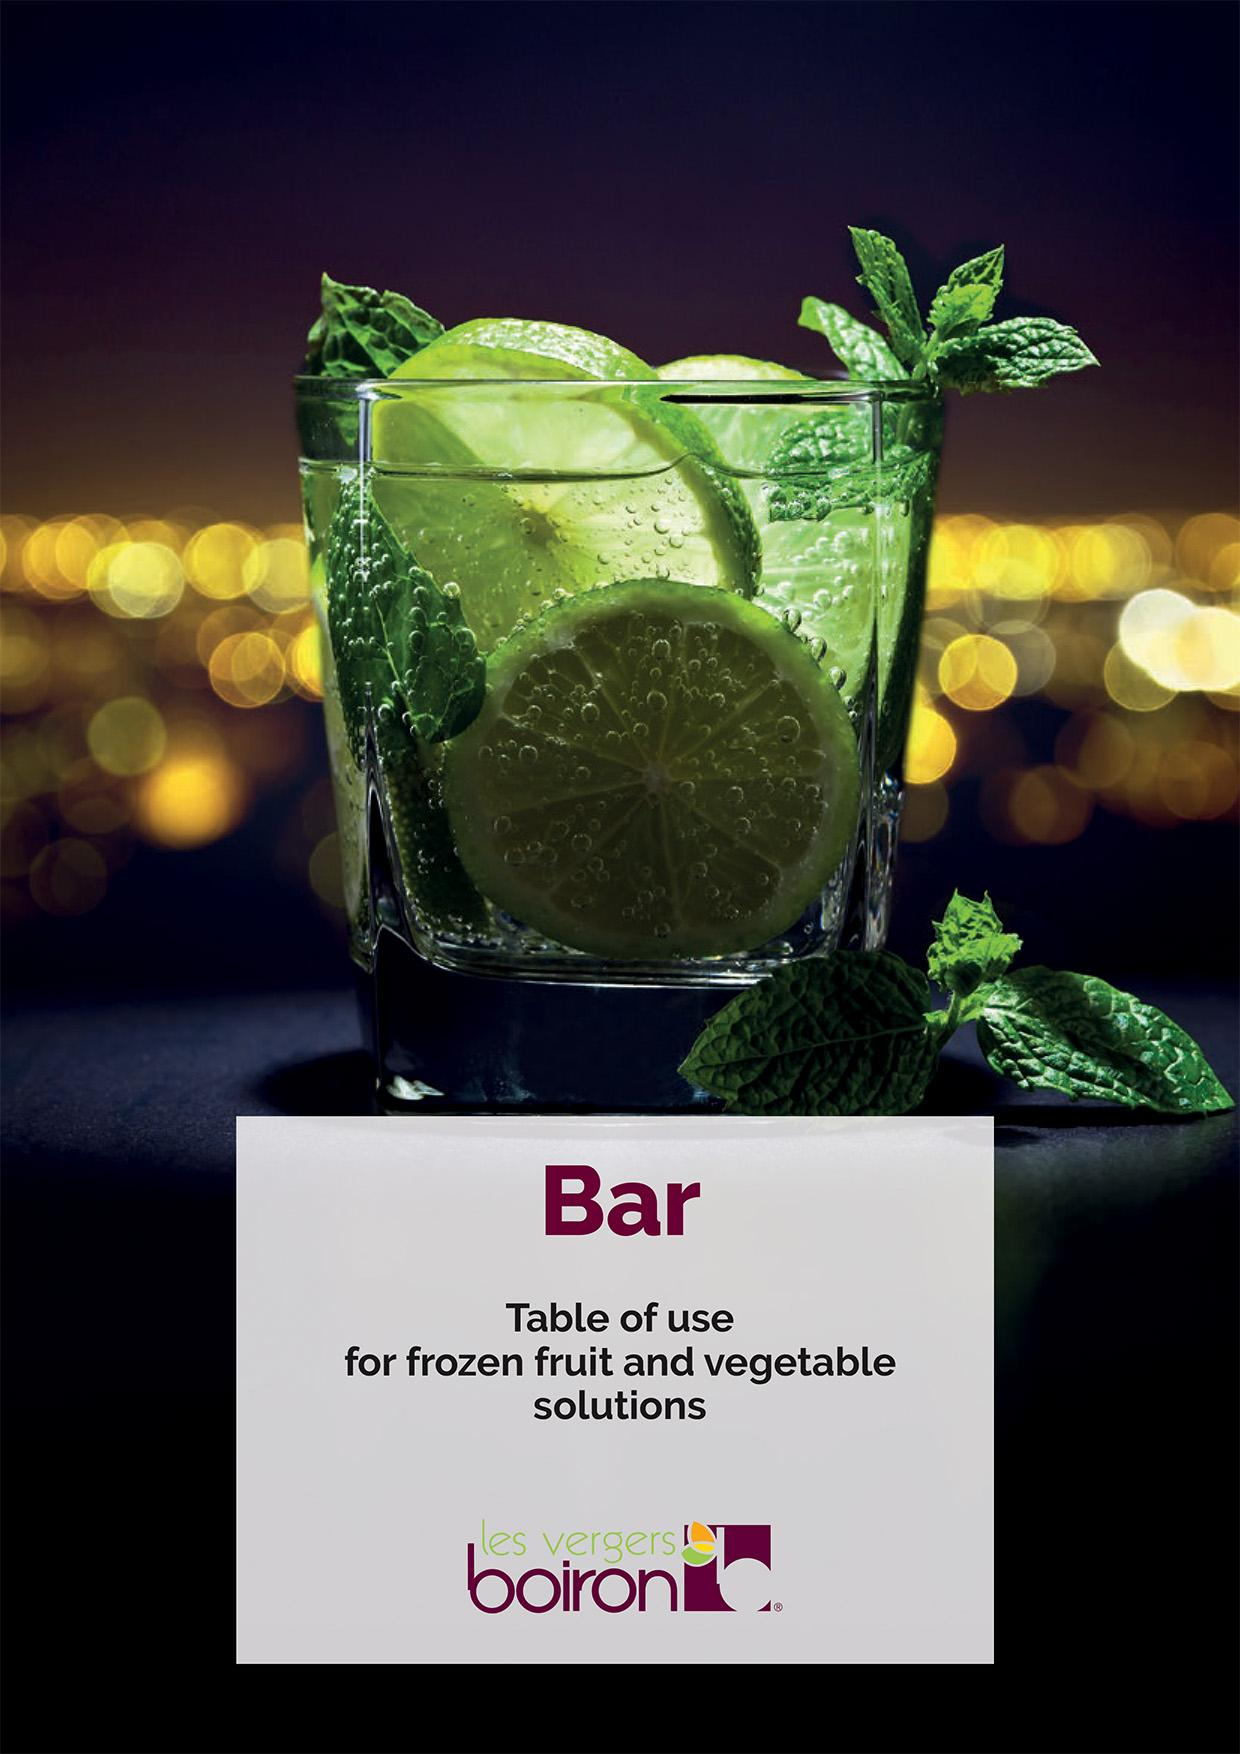 TM_BAR_TAB10G-A_EN-web-1.jpg